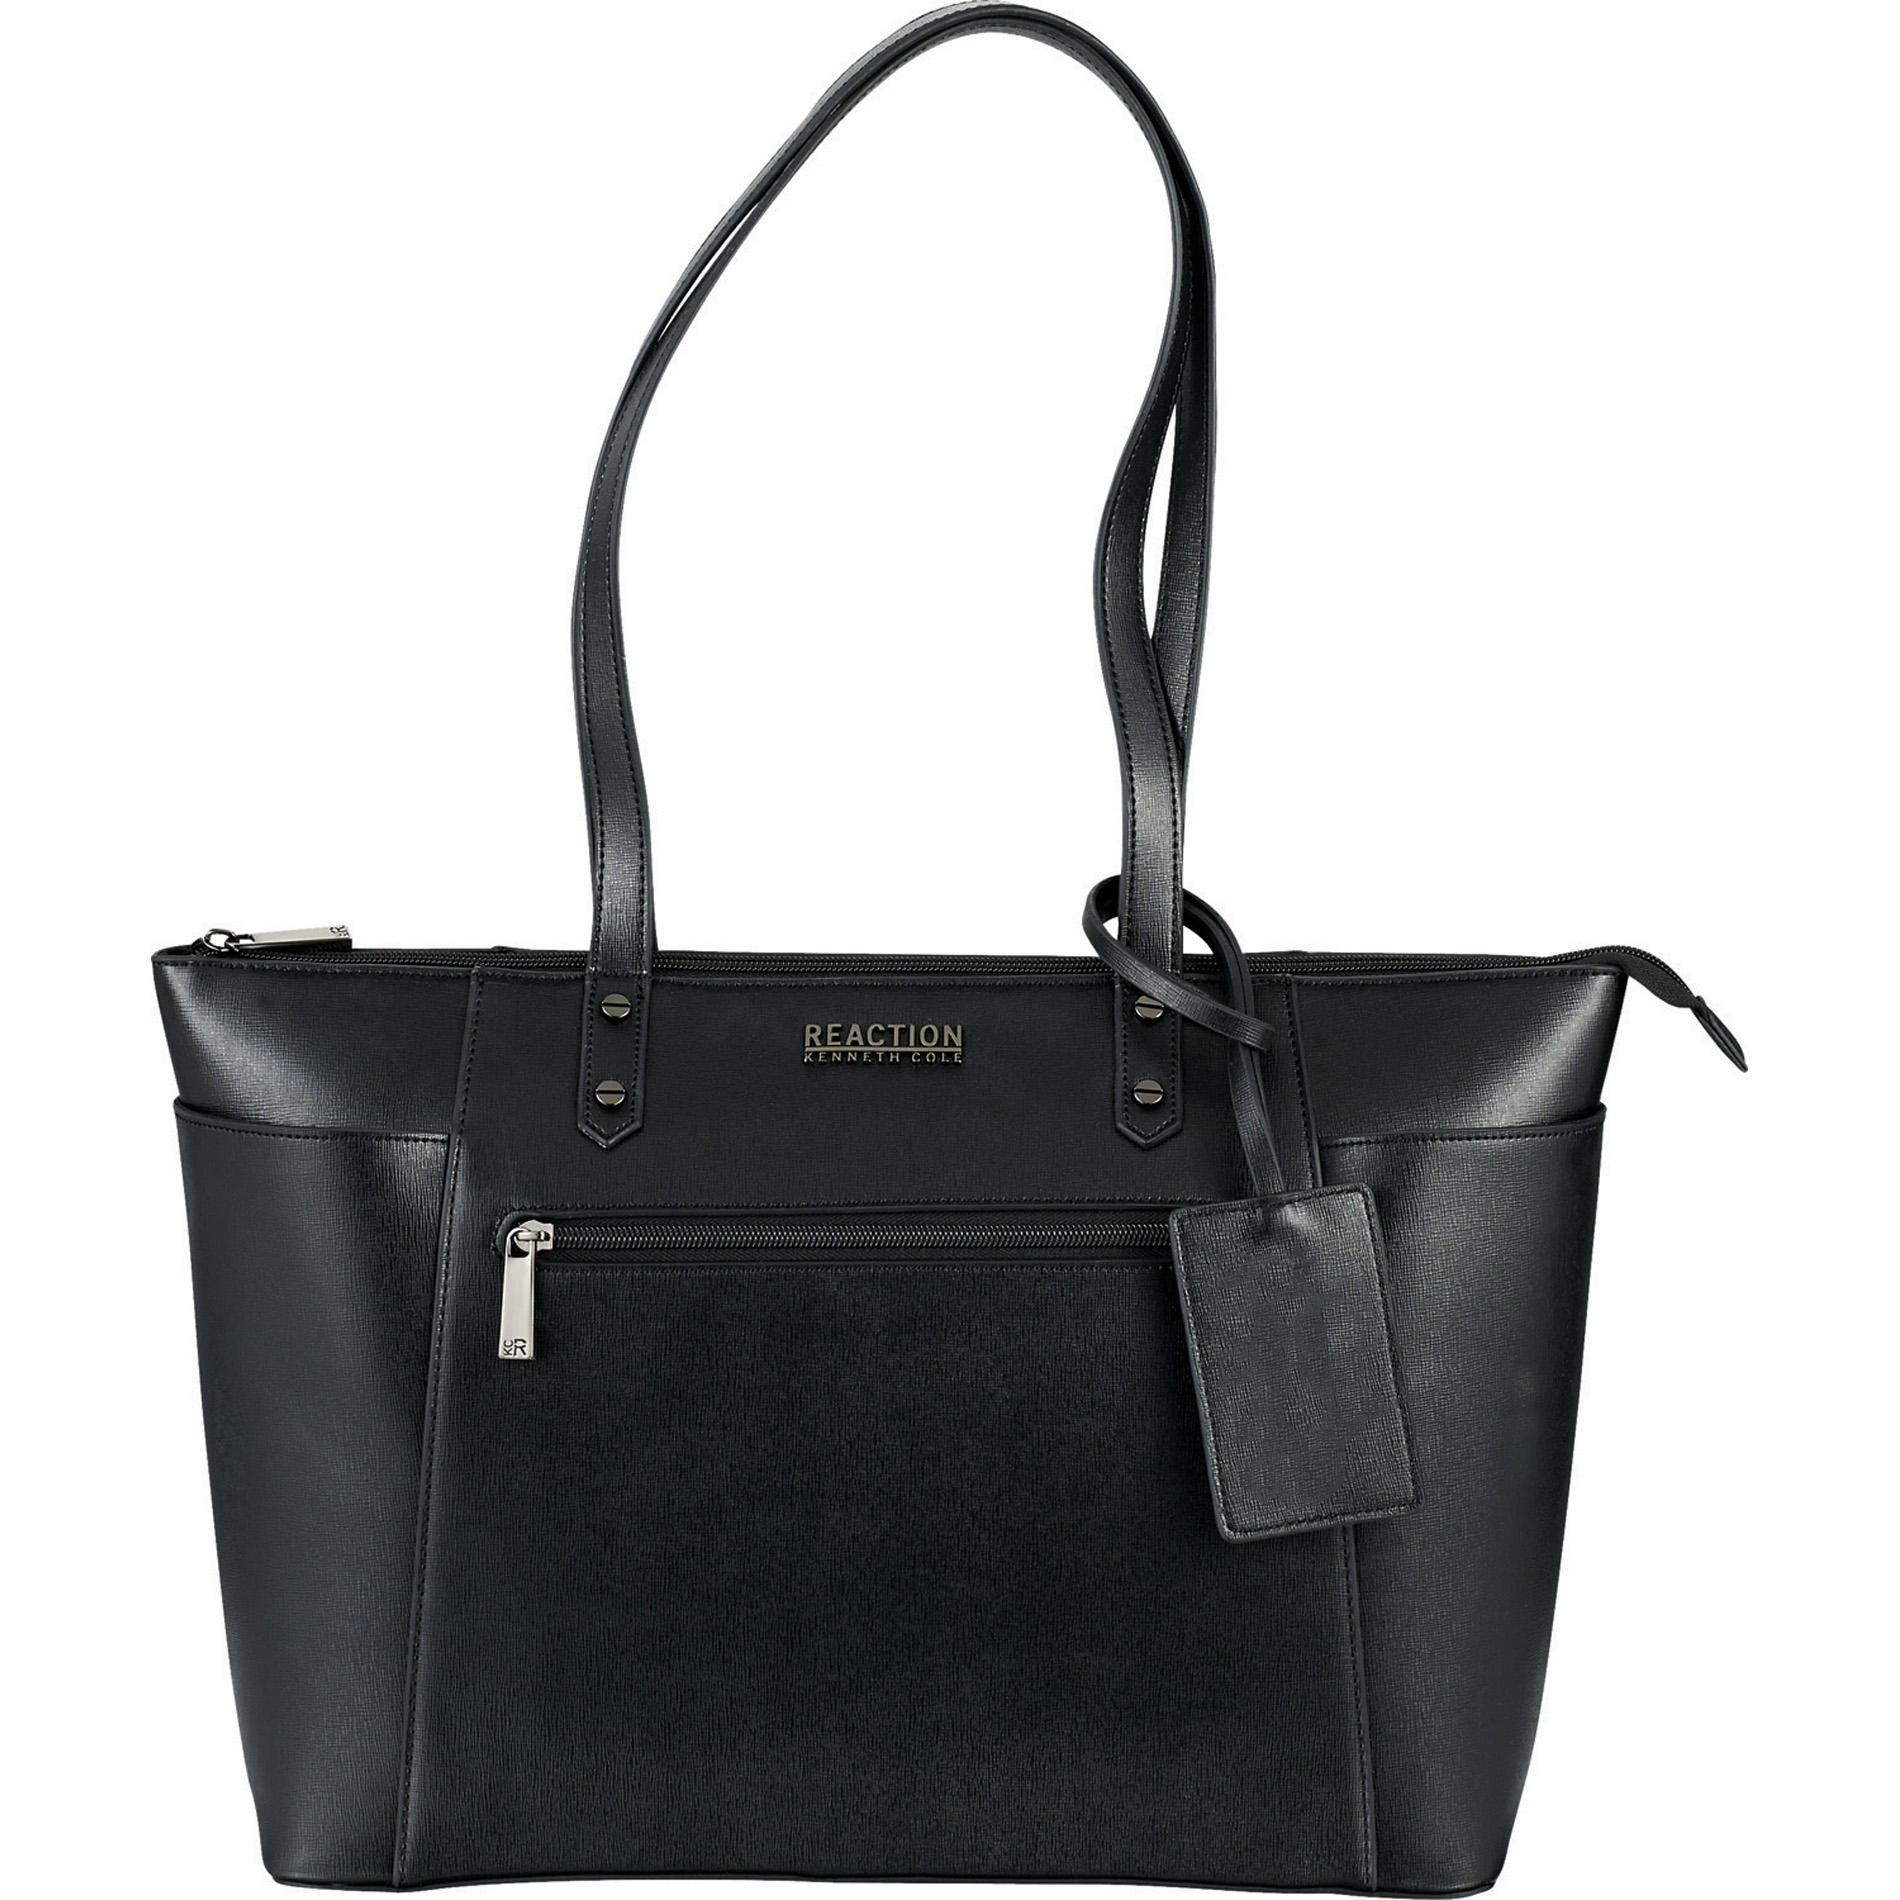 Kenneth Cole 9950-82 - 15